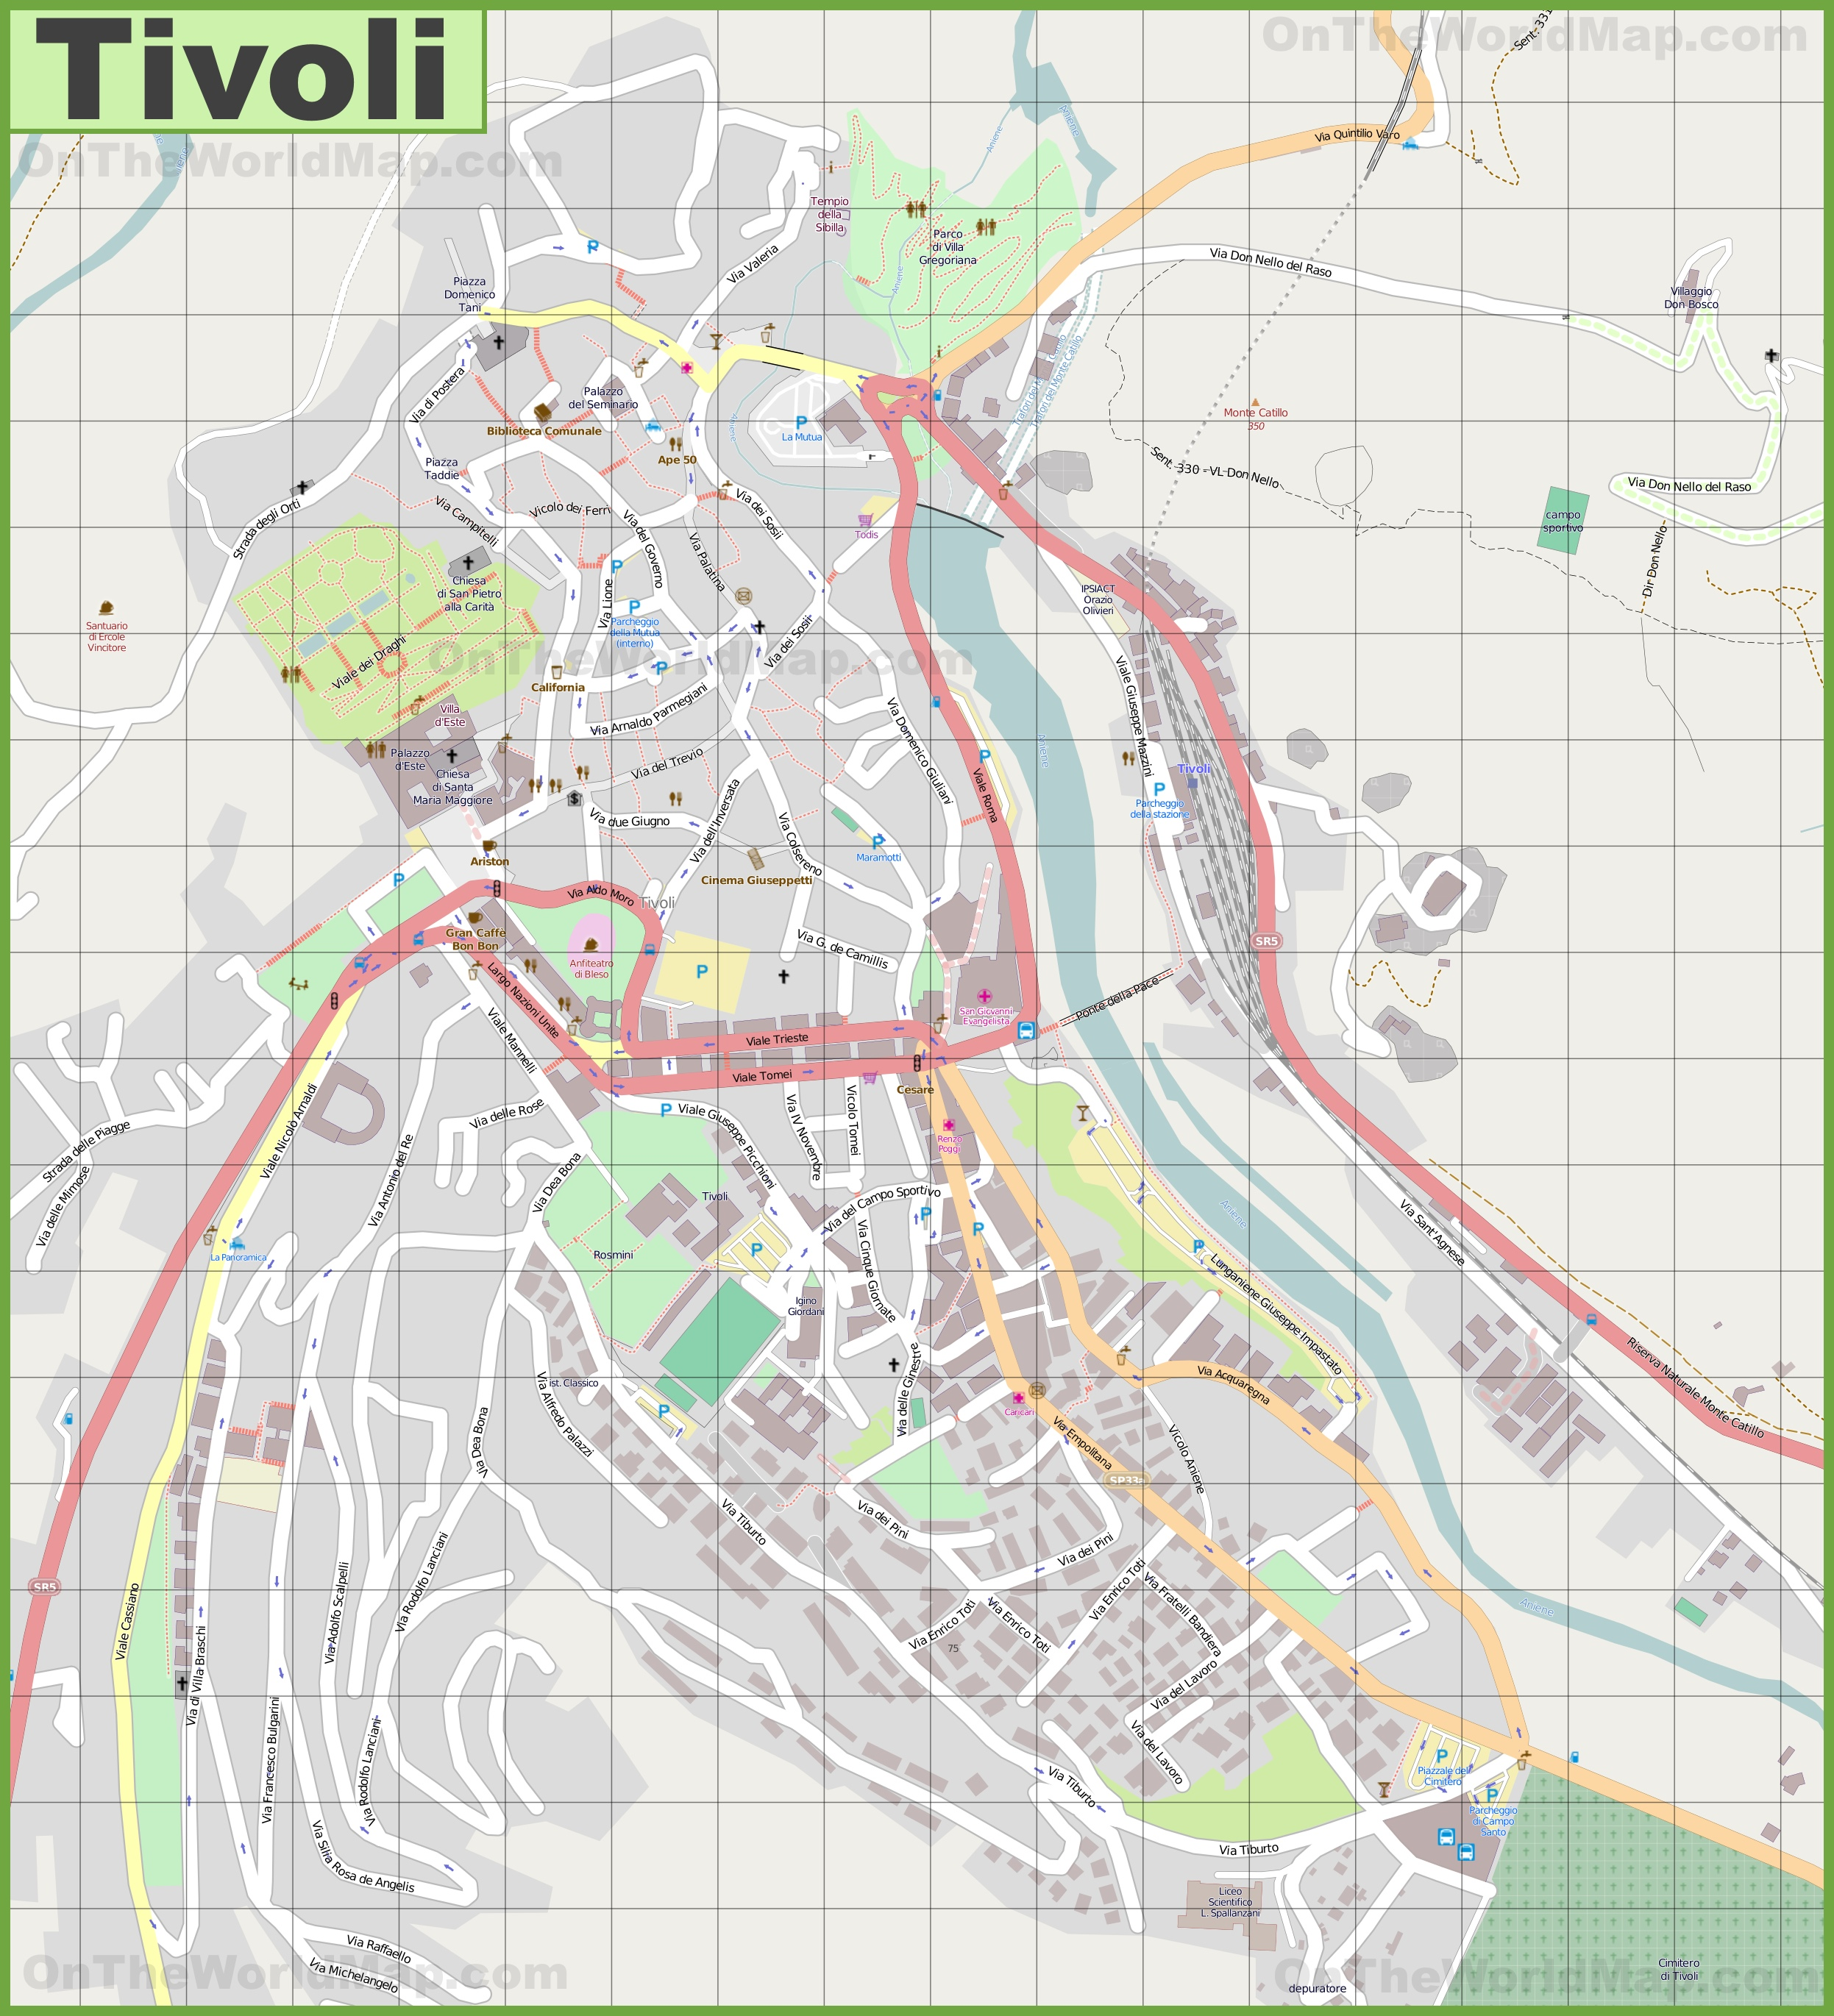 Detailed Map Of Italy In English.Large Detailed Map Of Tivoli